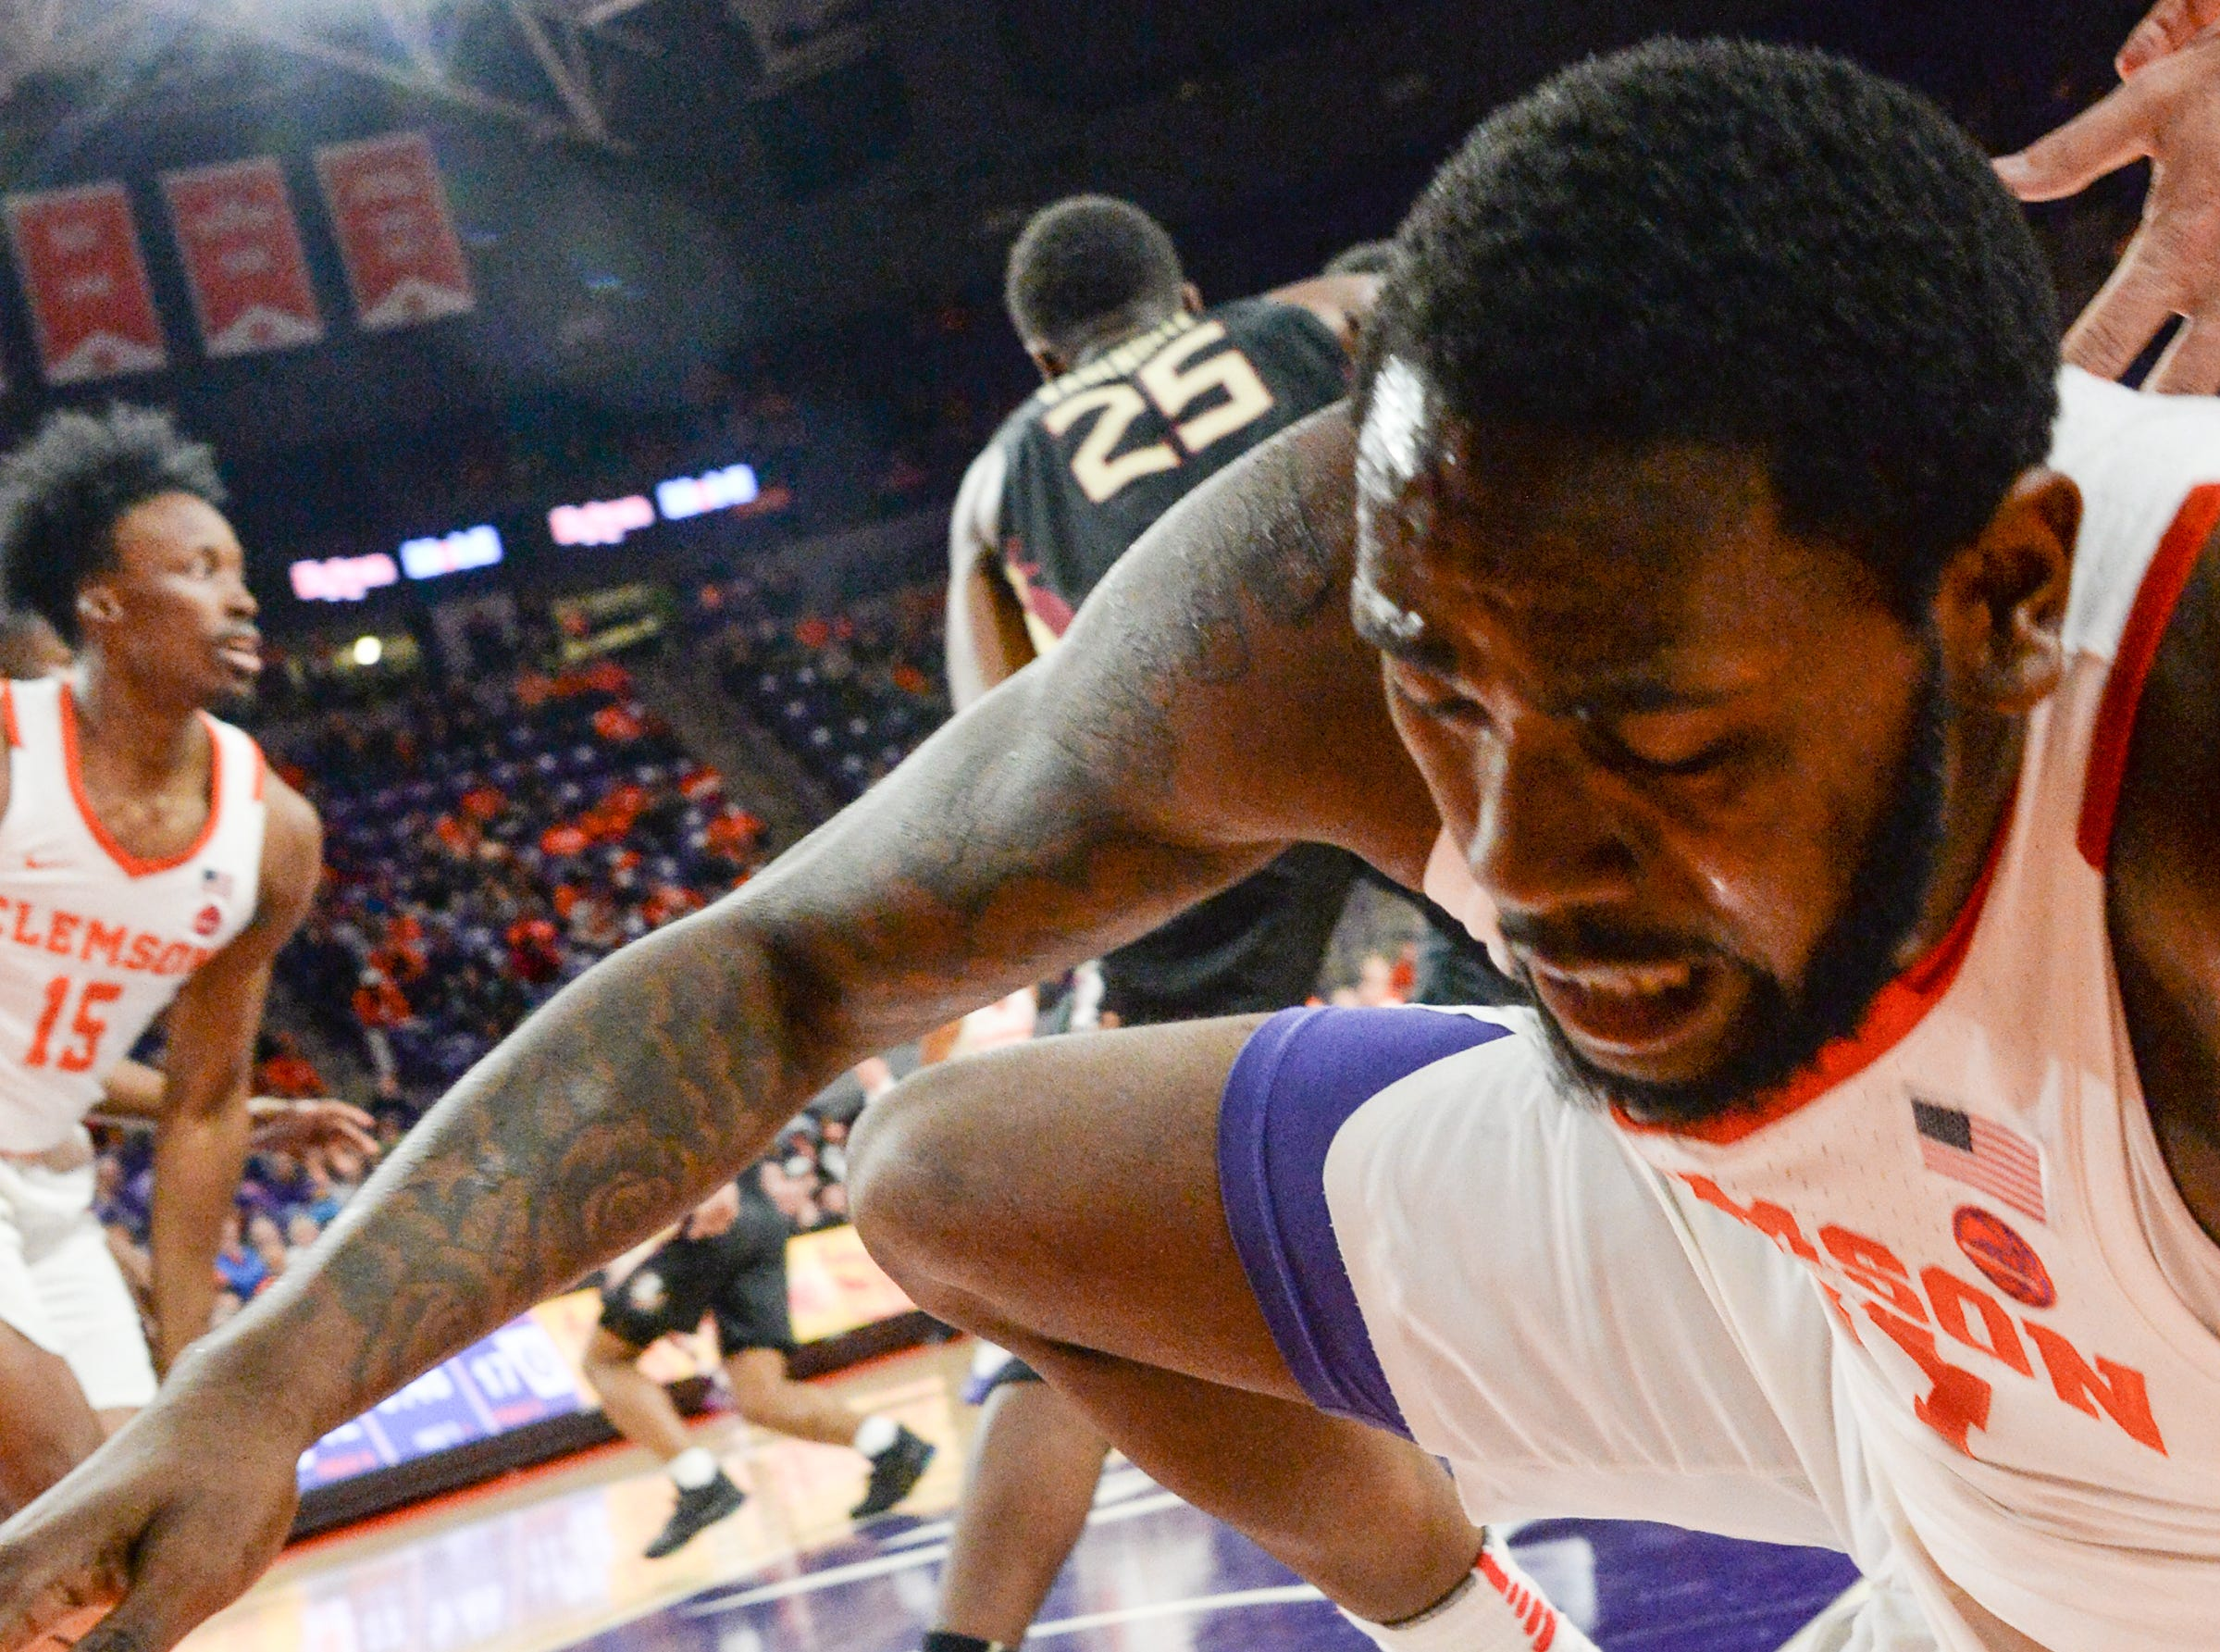 Clemson forward Elijah Thomas (14) falls to the floor after trying to get a rebound near Florida State forward Mfiondu Kabengele(25) during the first half at Littlejohn Coliseum in Clemson Tuesday, February 19, 2019.